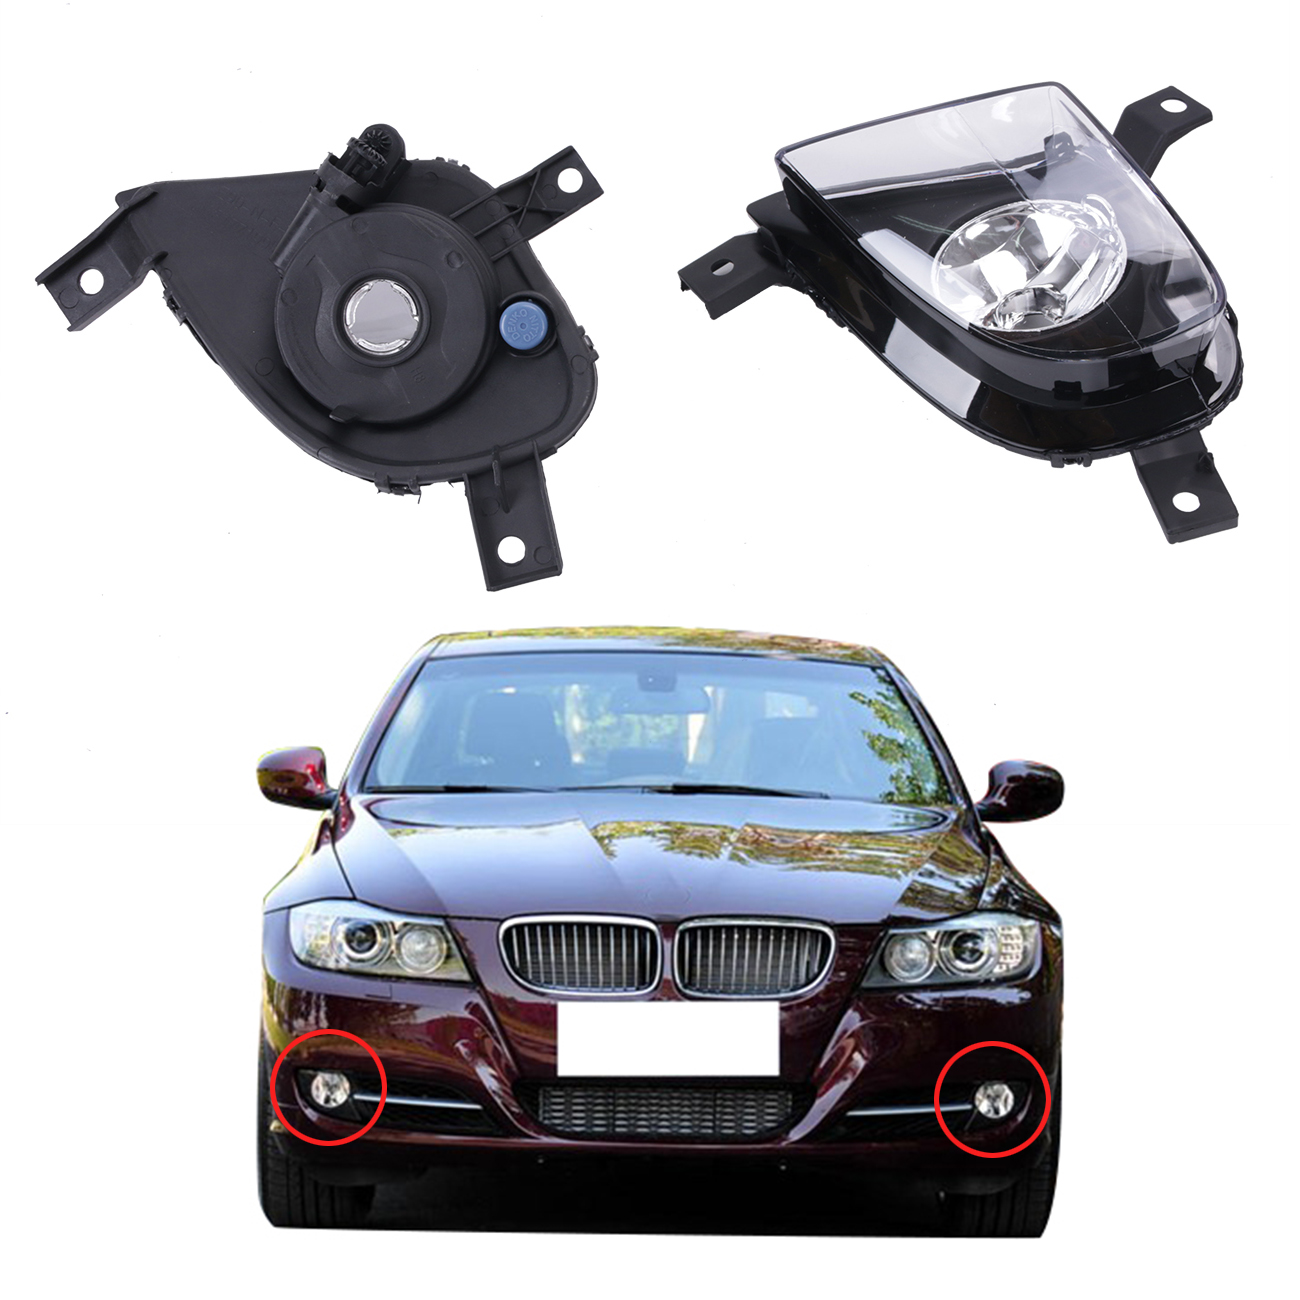 Fog Lights Lamps Foglamps Cover For BMW 3 Series 328i 323i 335d 335i E90 E91 2009 2010 2011 OEM 63177199893 63177199894 #W085 medical oxygen regulator pressure flowmeters hot sales page 5